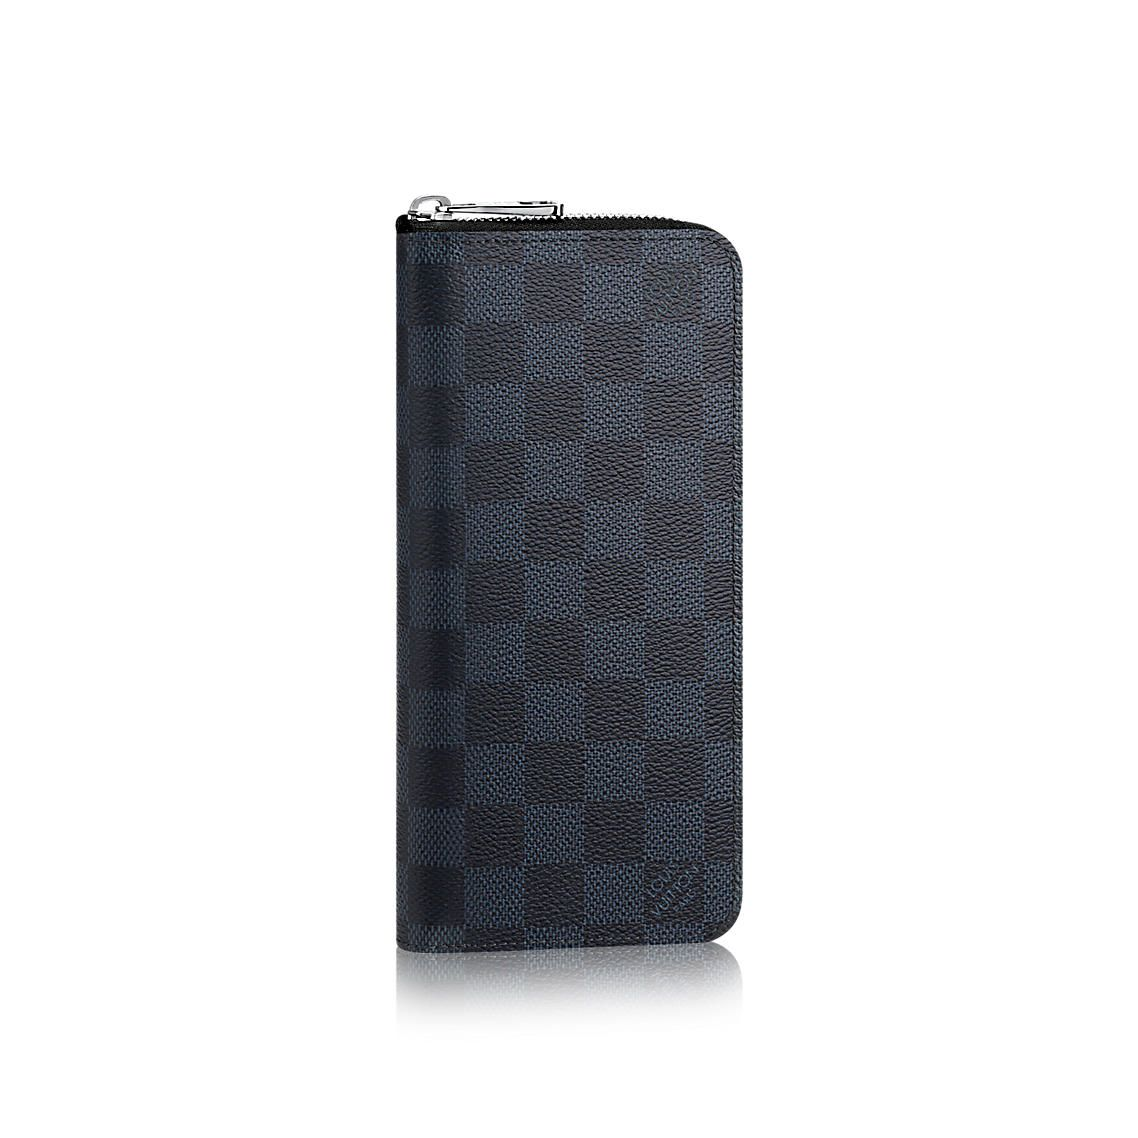 2ed46f56b88f Zippy Wallet Vertical - Damier Cobalt Canvas - Small Leather Goods ...